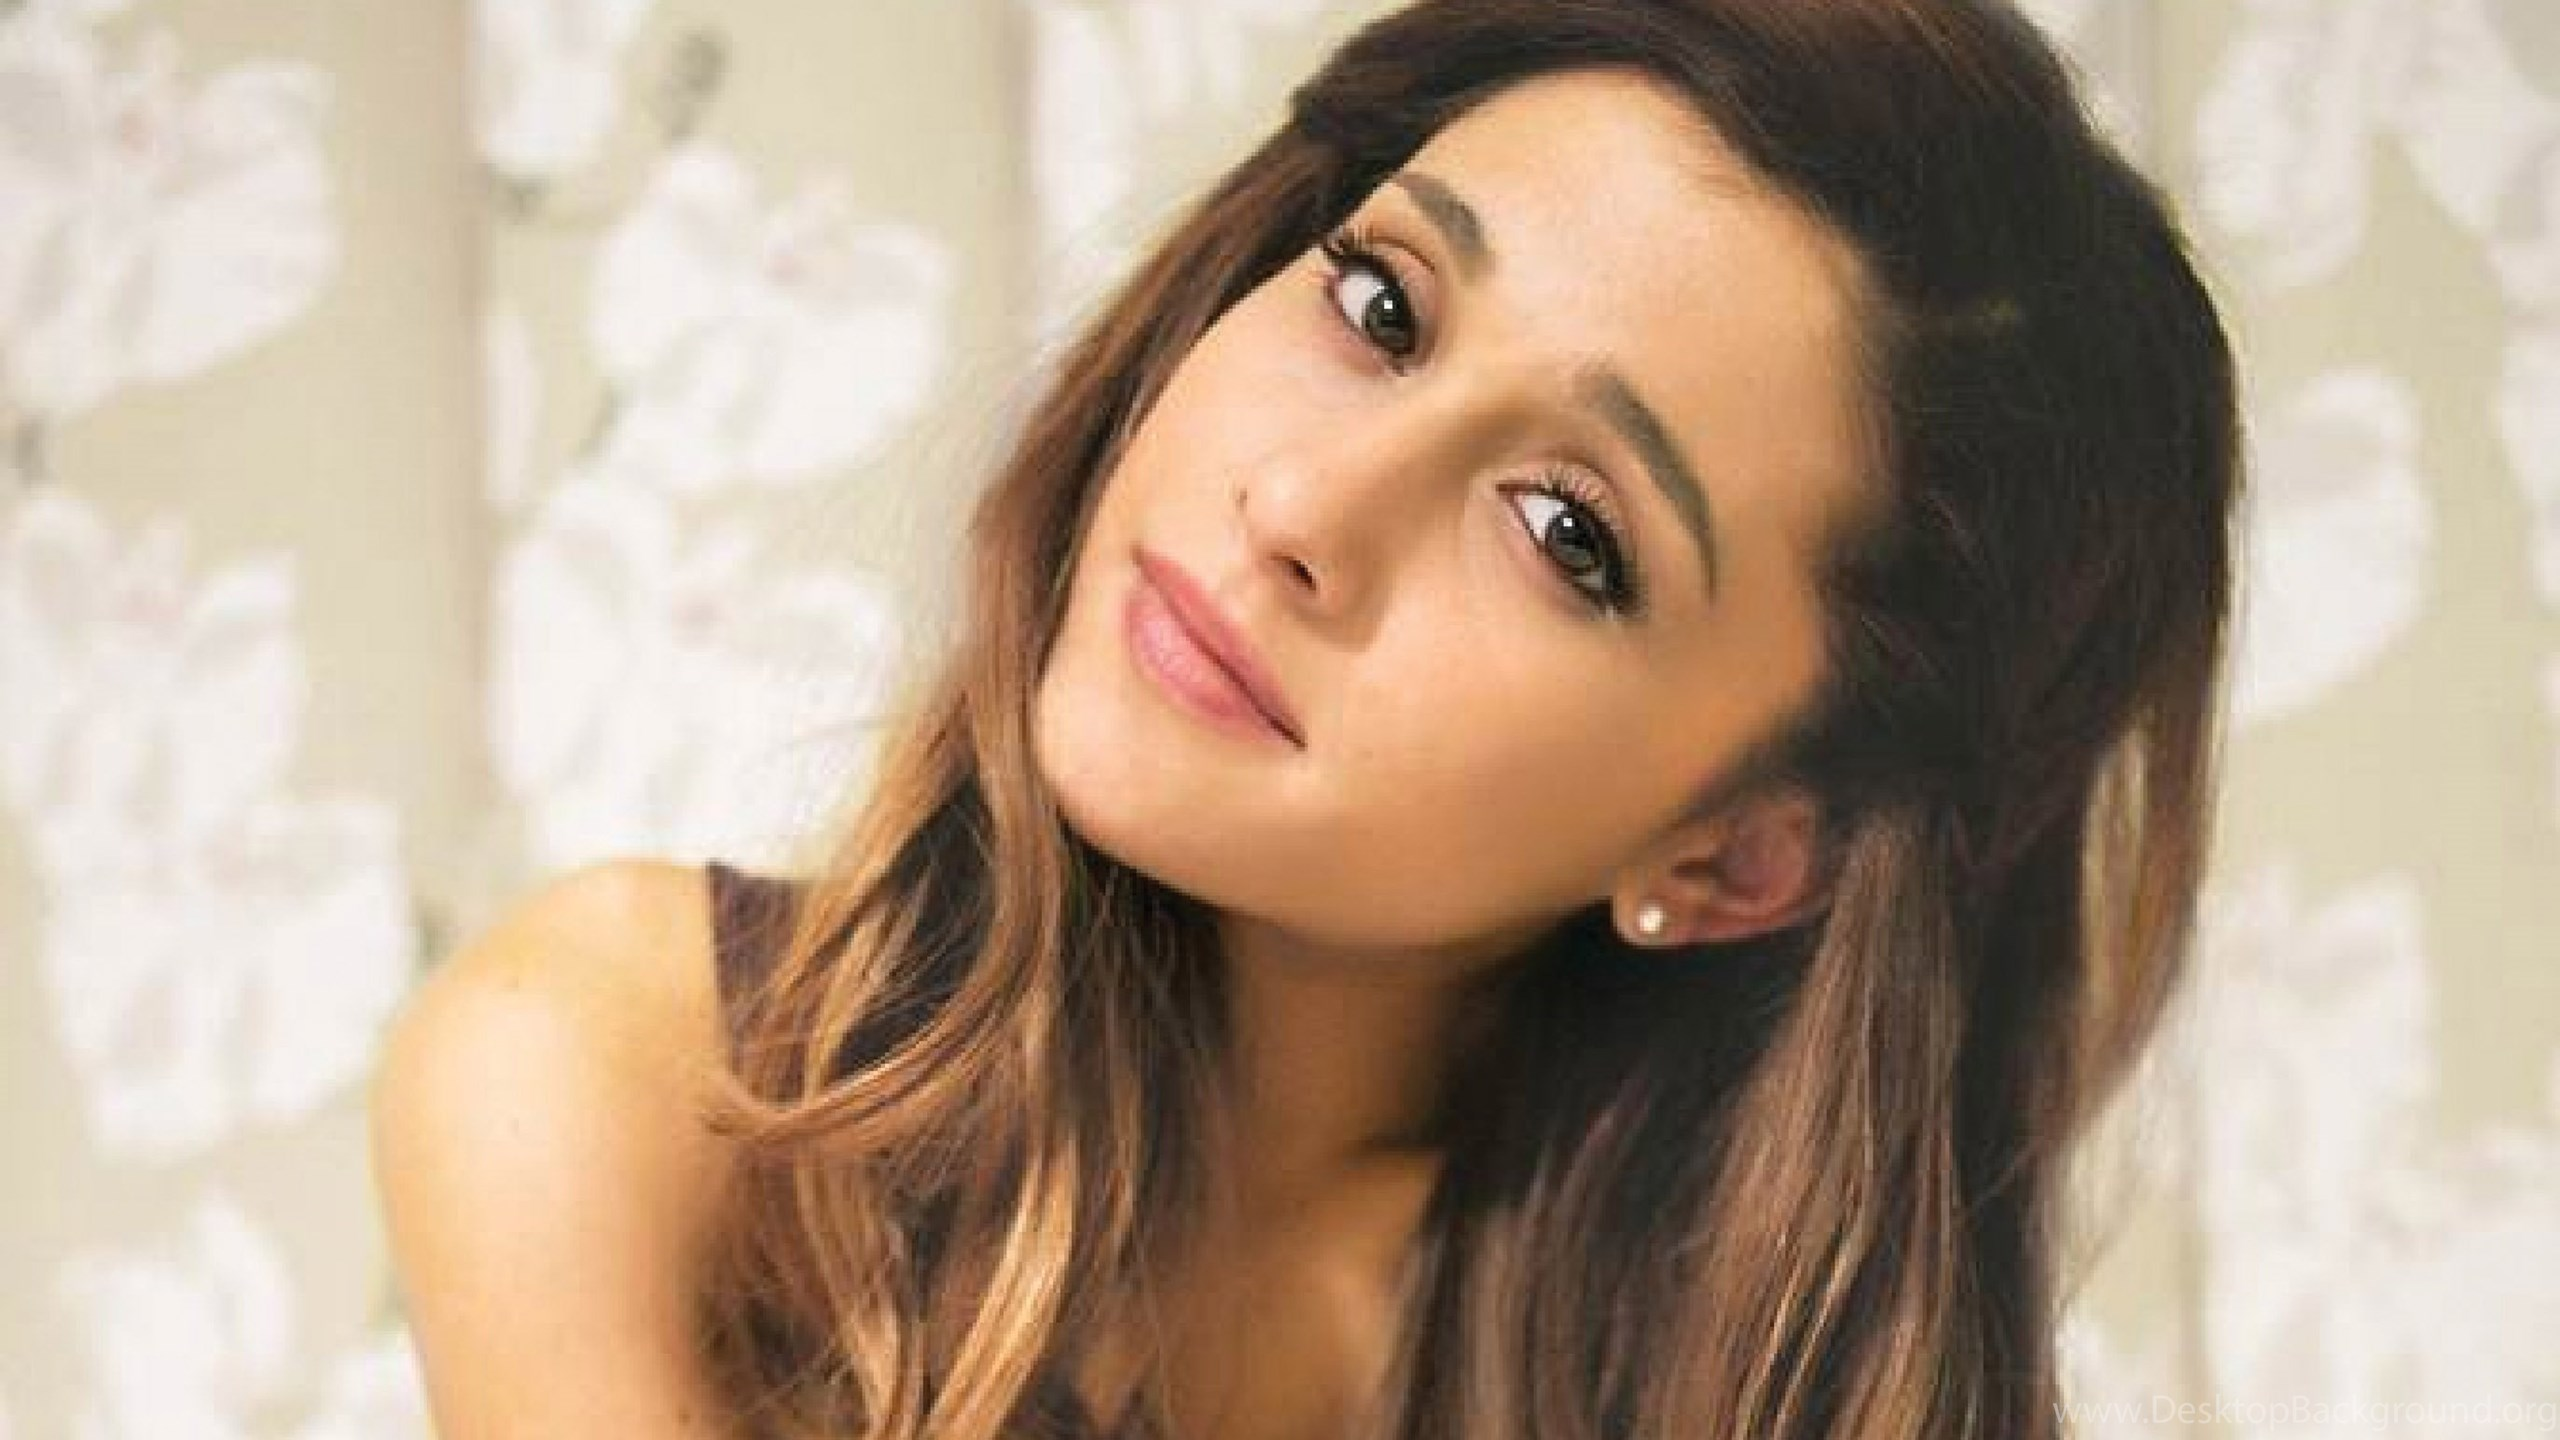 ariana grande wallpapers hd photos desktop background